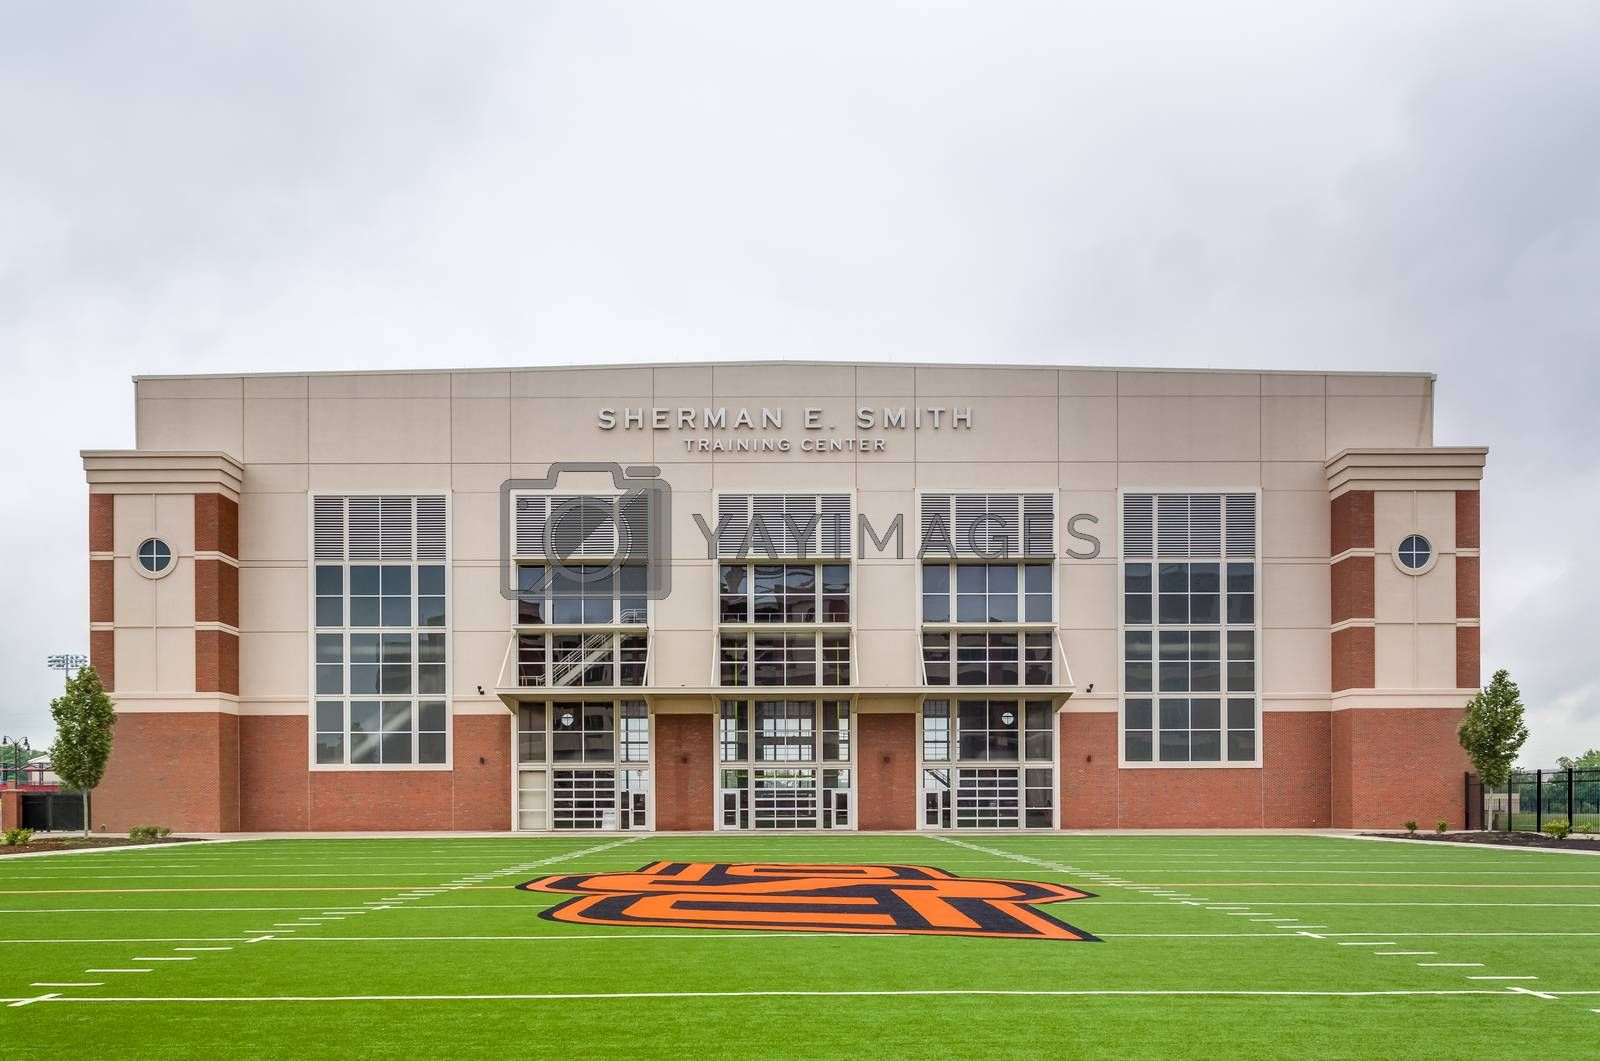 STILLWATER, OK/USA - MAY 20, 2016: Sherman E. Smith Training Center on the campus of Oklahoma State University.